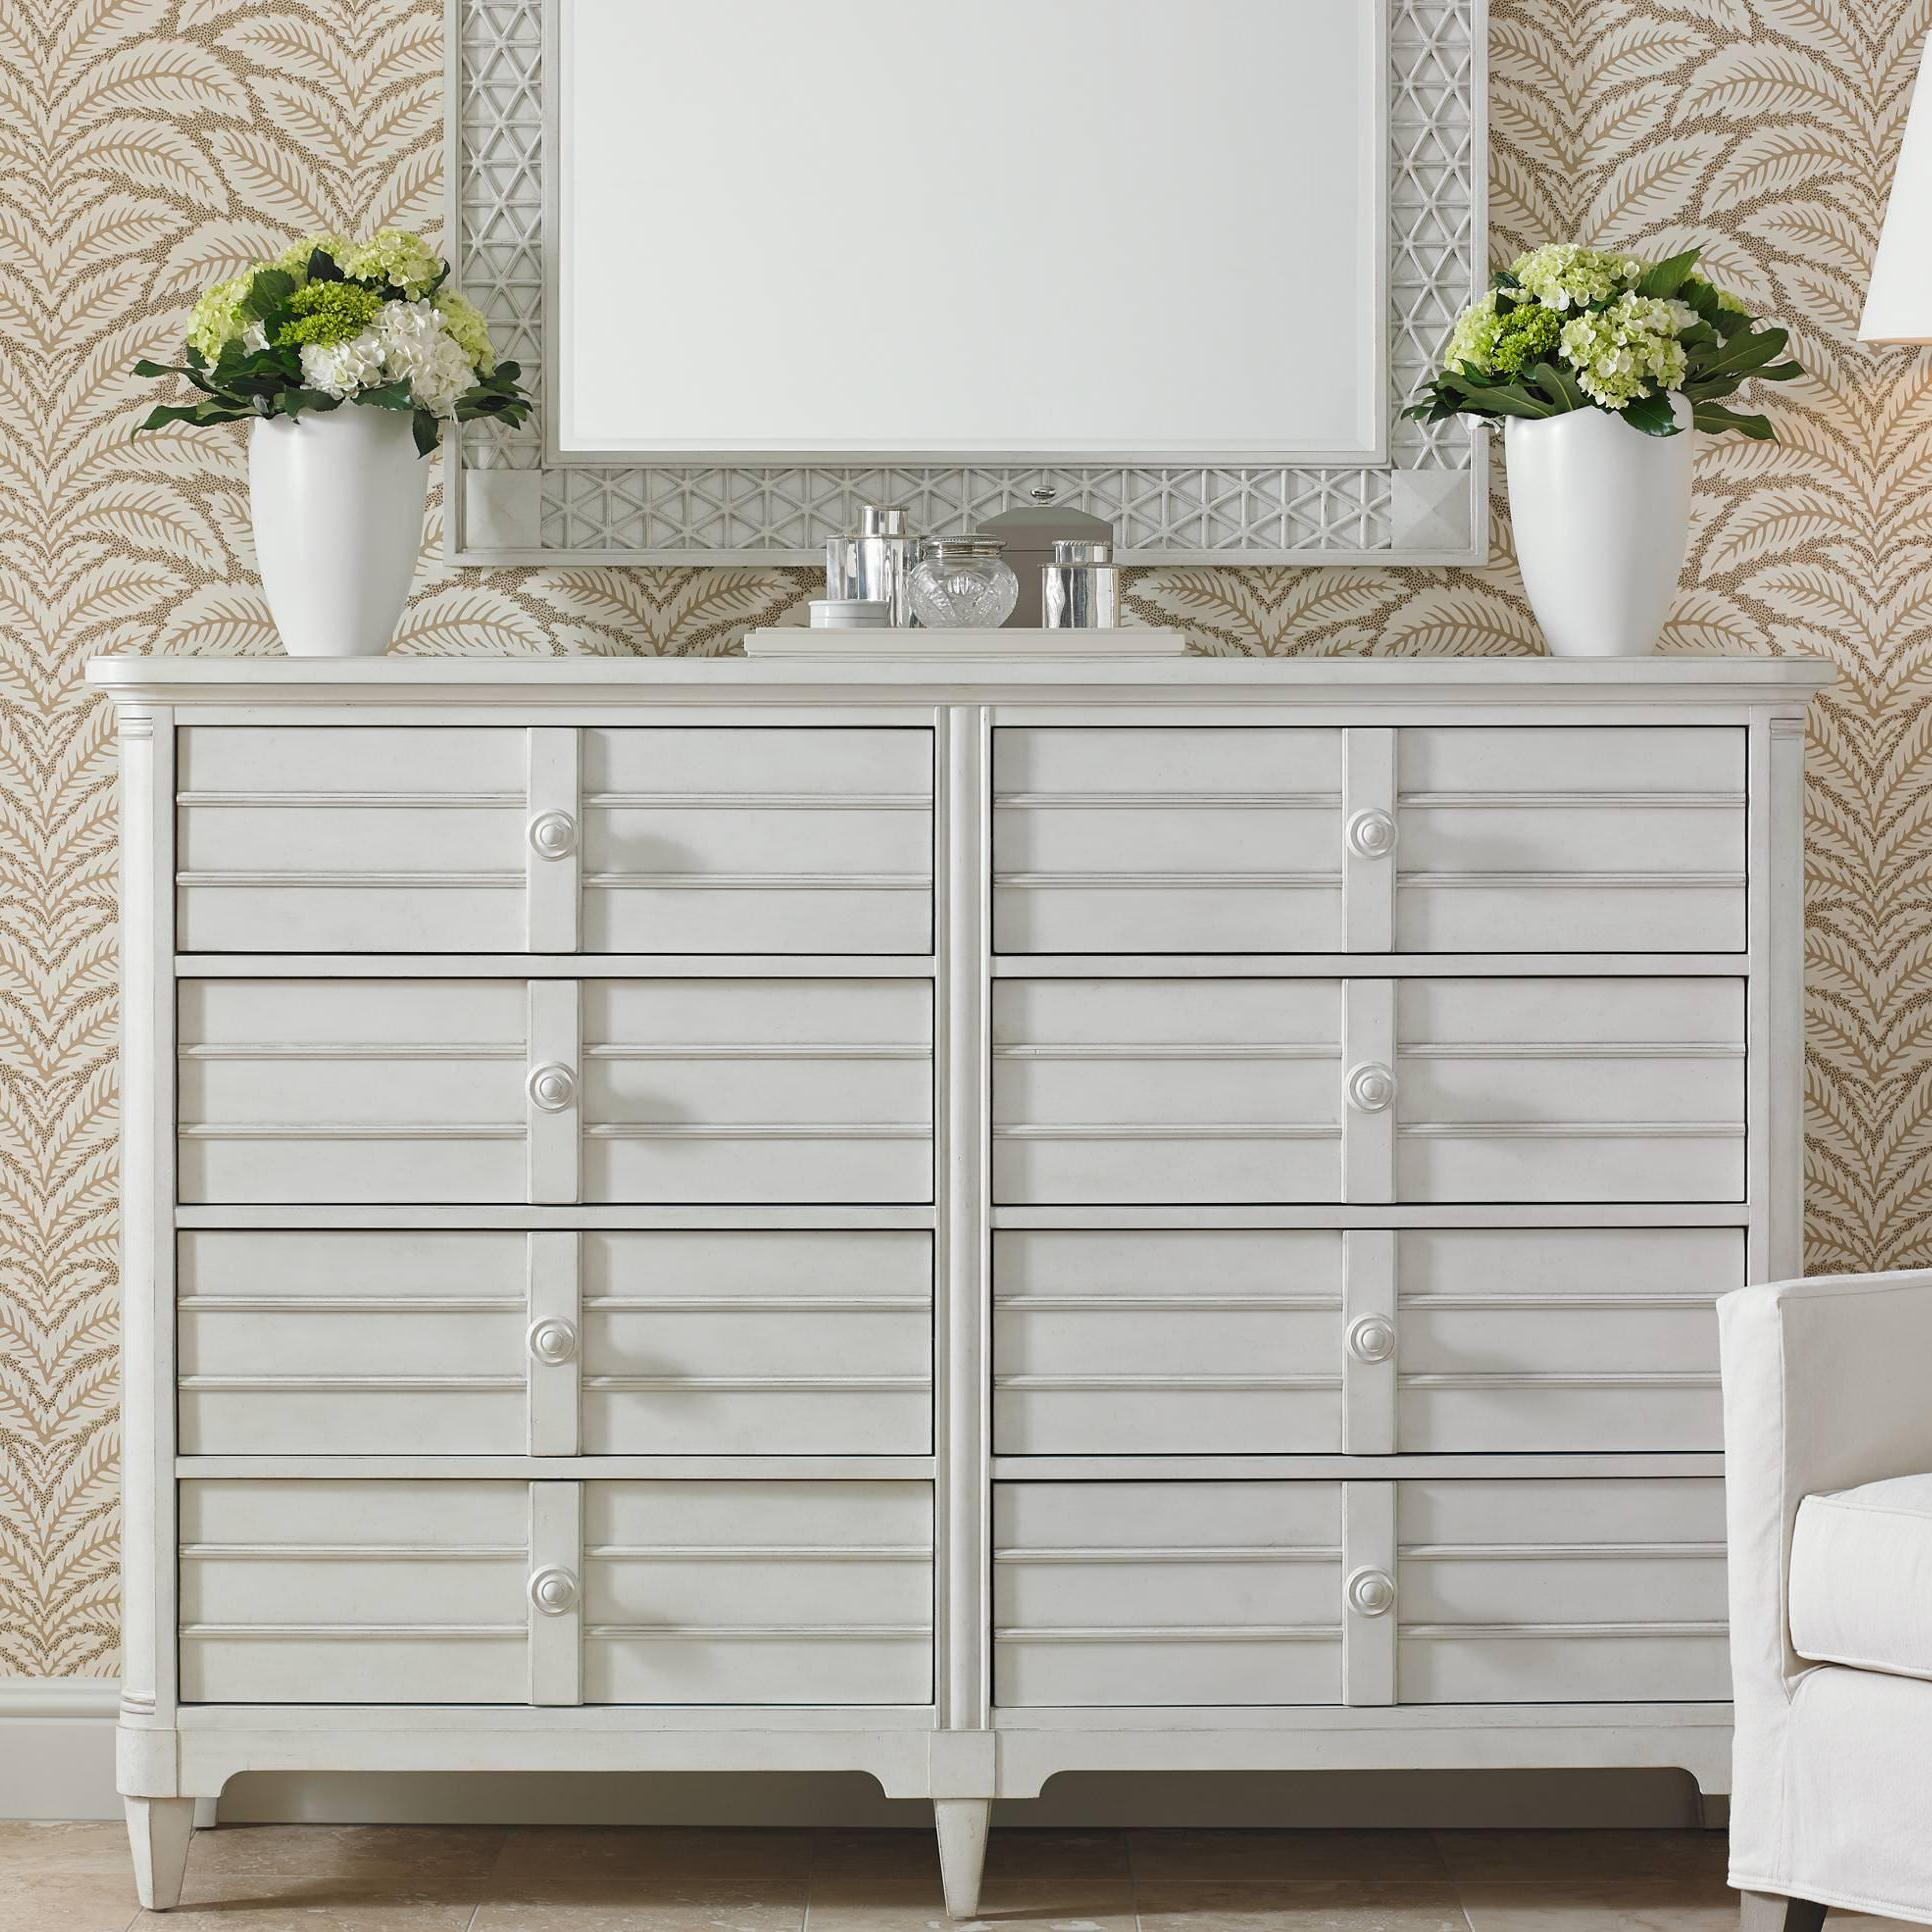 Stanley Furniture Cypress Grove  Dresser with Mirror - Item Number: 451-23-06+451-23-30